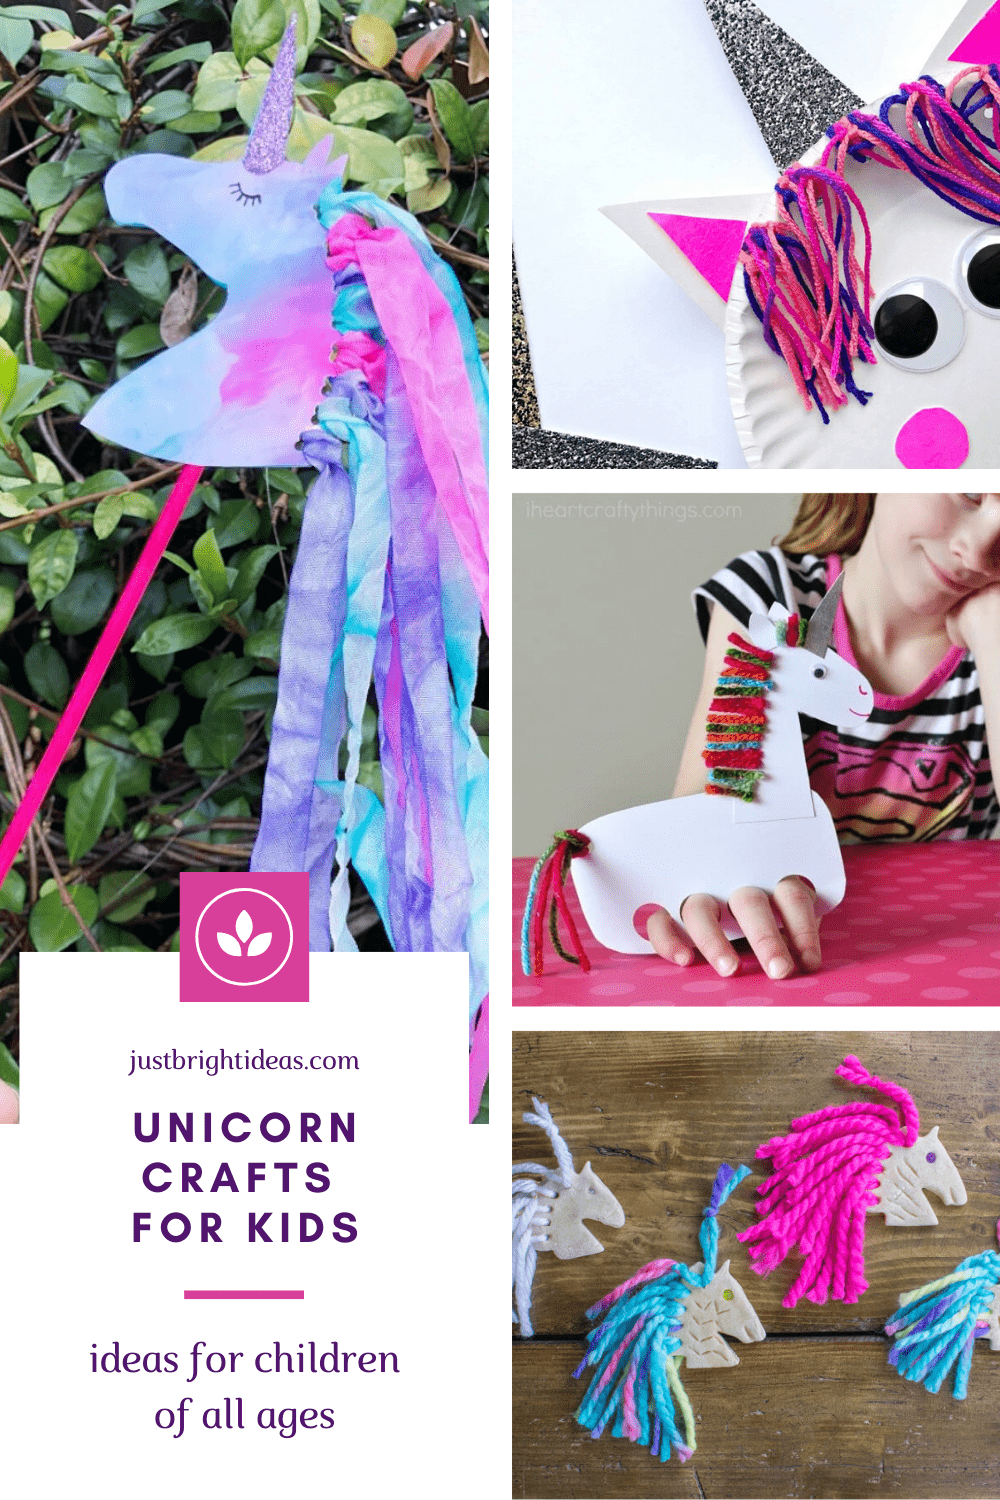 Hands up if you love unicorns! These easy to make crafts are perfect for kids and grownups - and a fun way to spend an afternoon